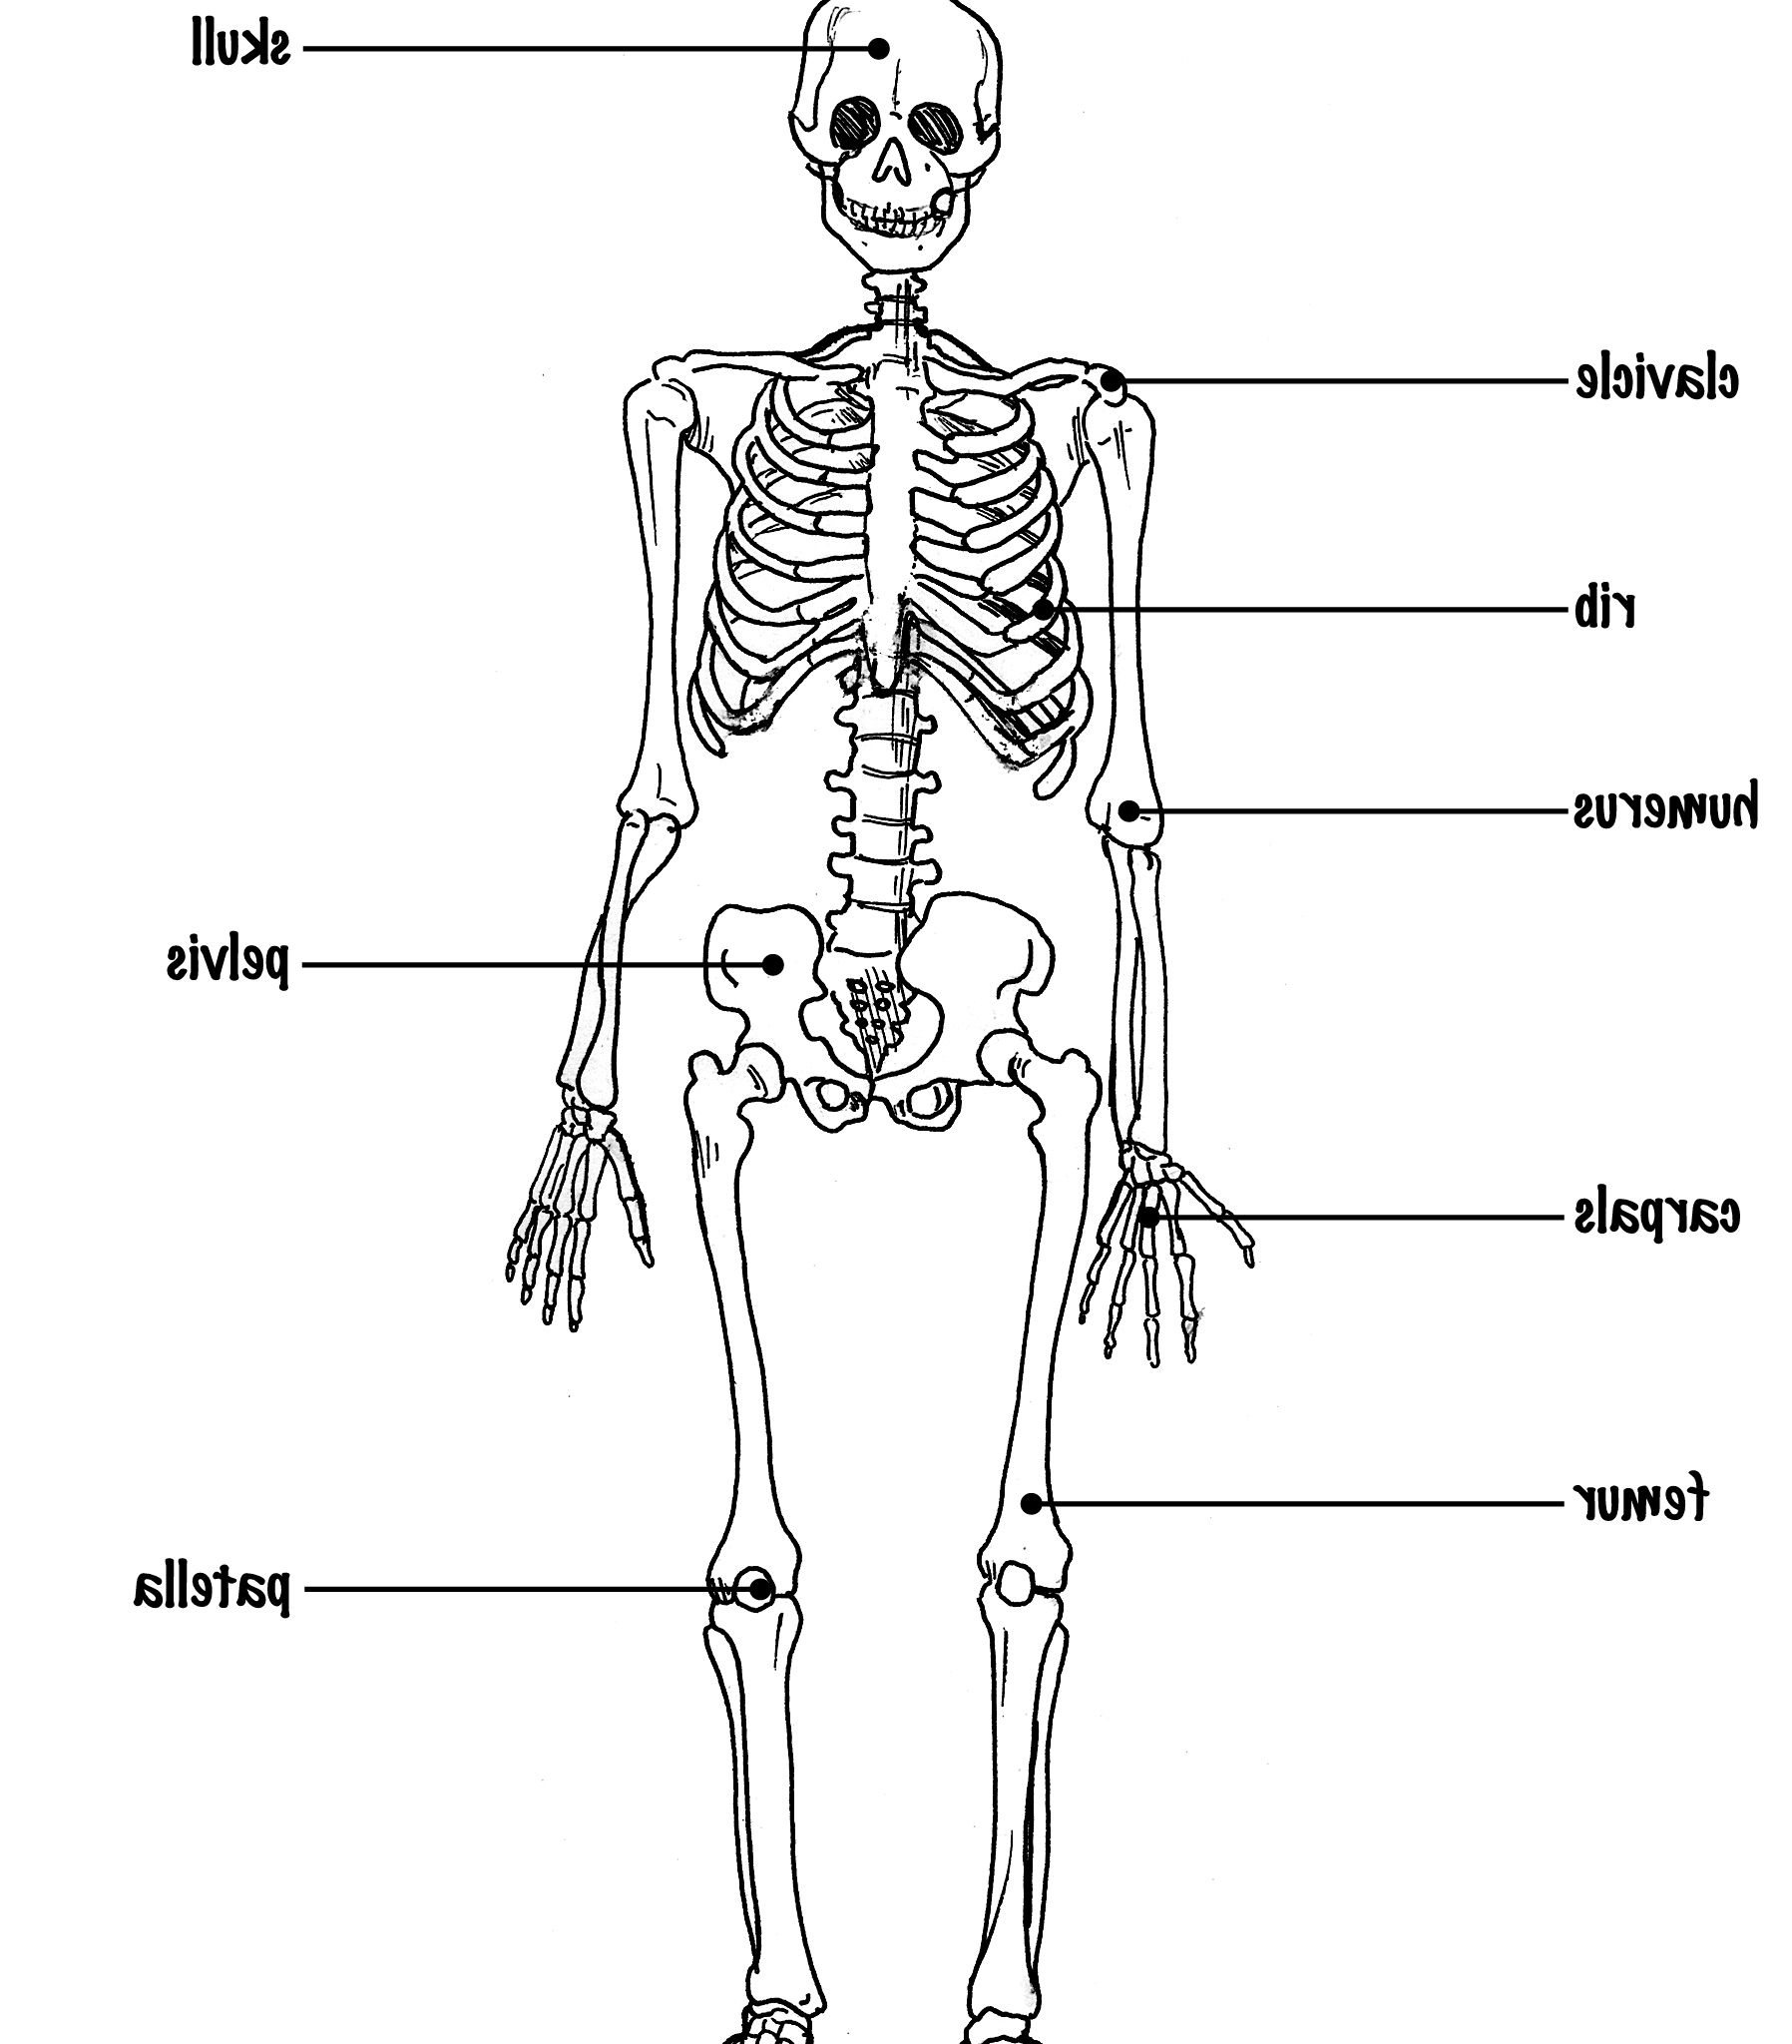 the skeletal system diagram labeled   the skeletal system diagram labeled  skeletal system diagram with labelling